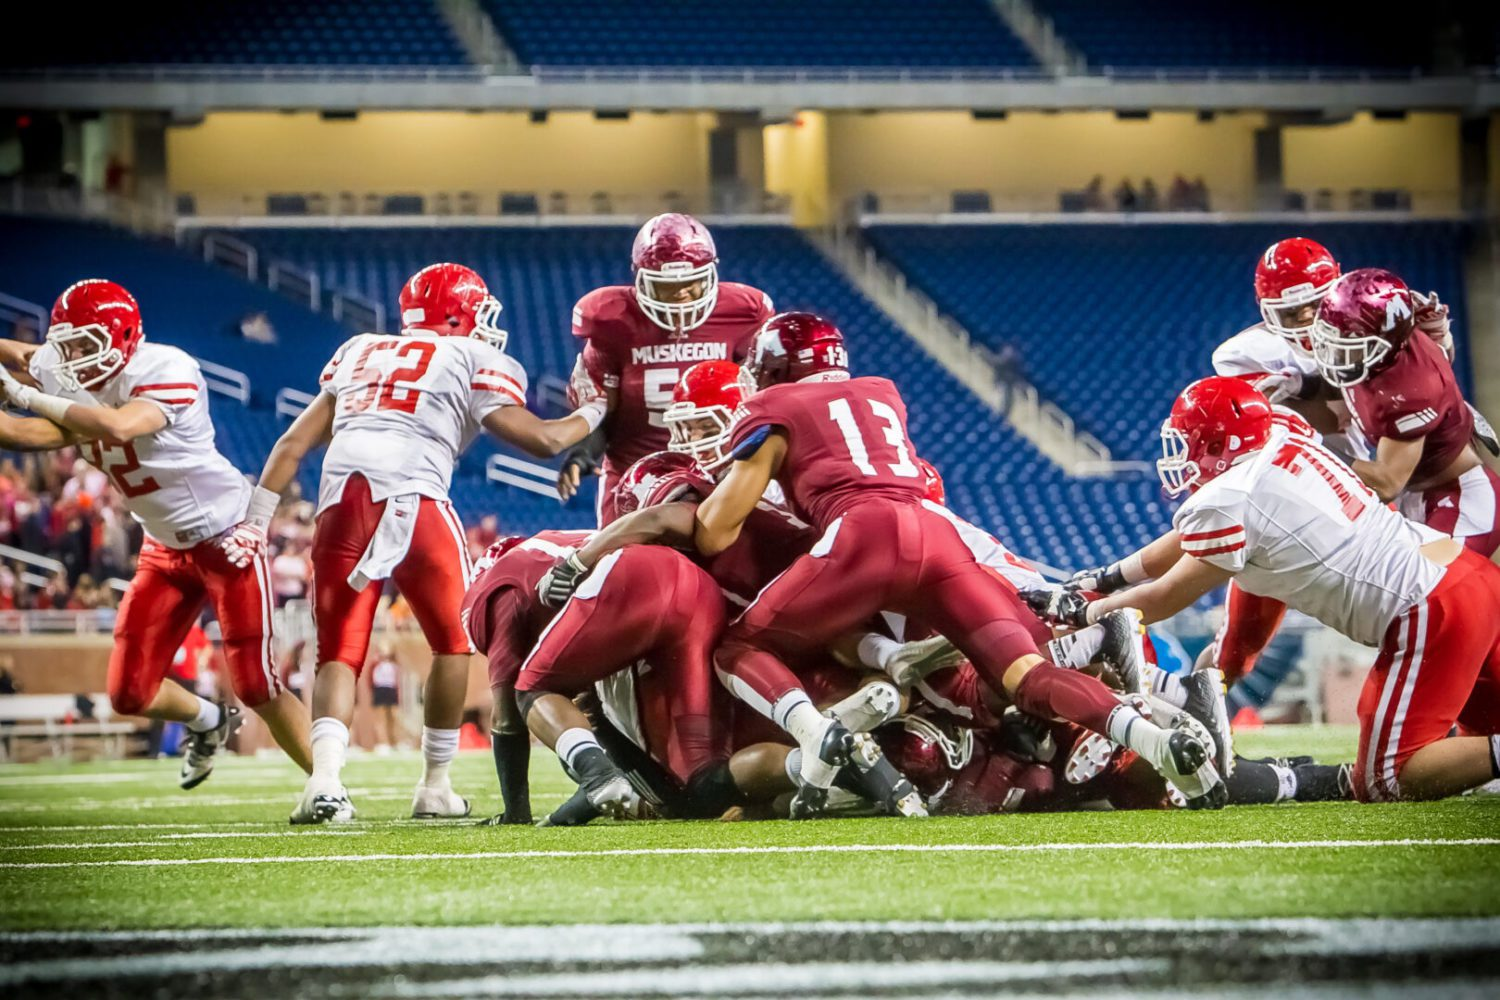 Big Reds lose third straight state championship game, 7-0 to Orchard Lake St. Mary's